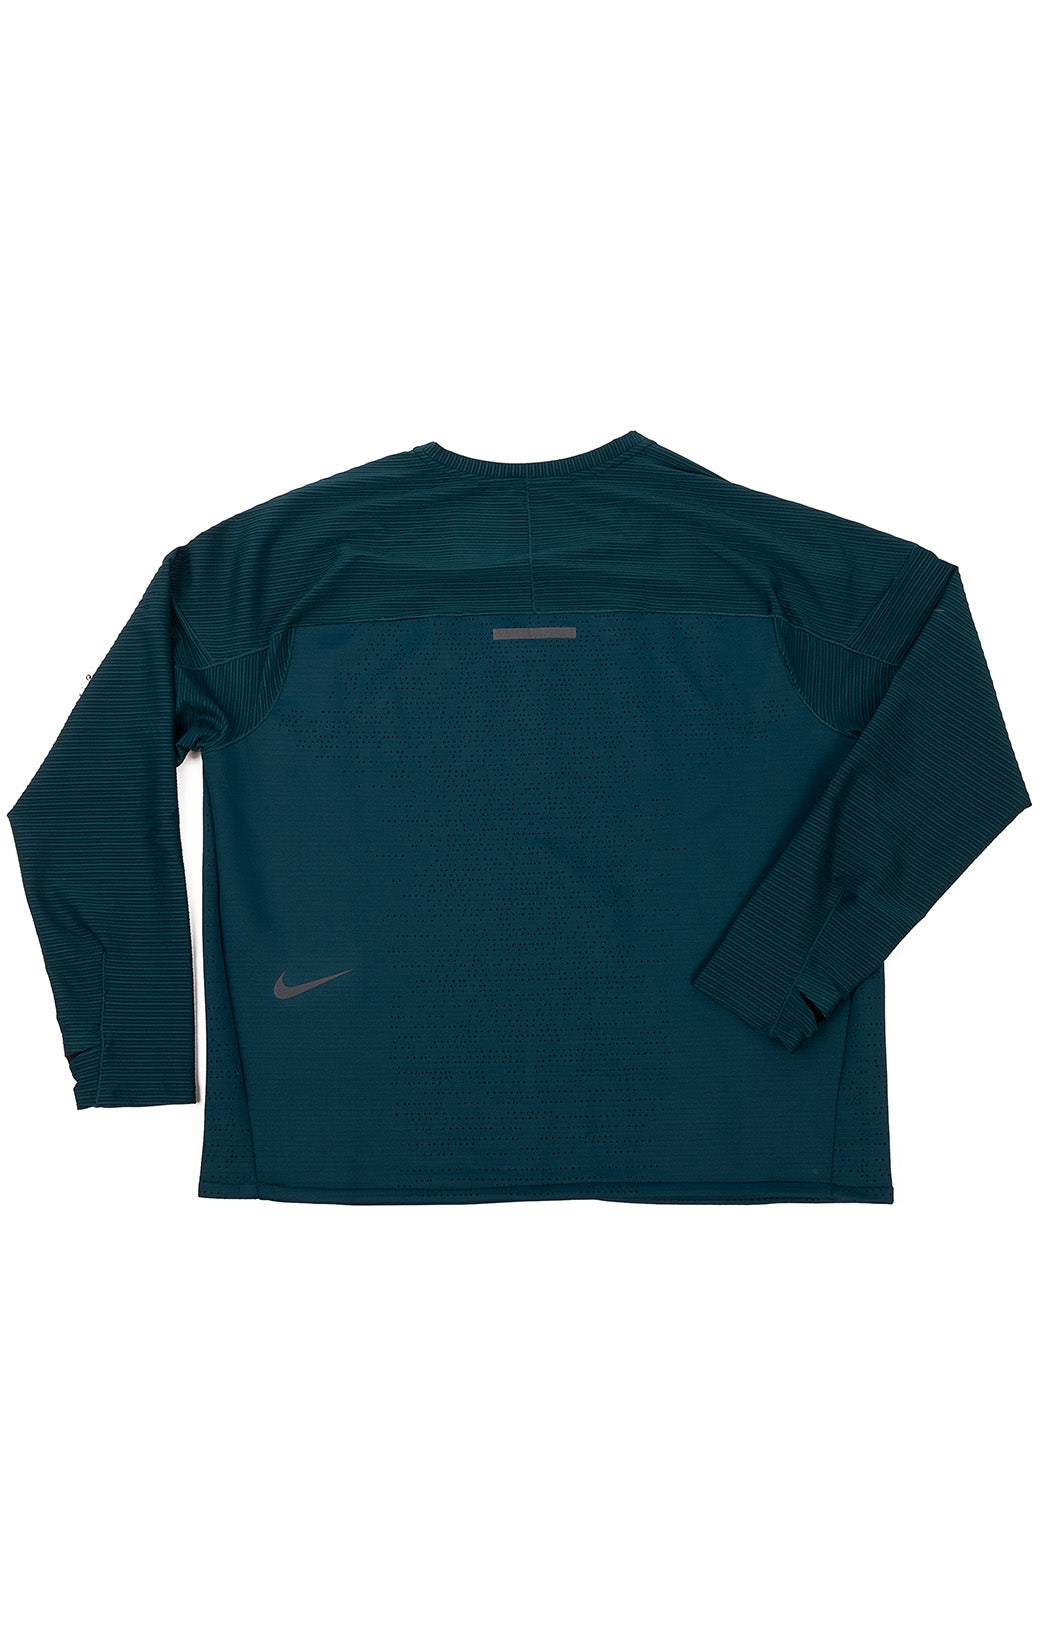 NIKE with tags Shirt Size: XXL